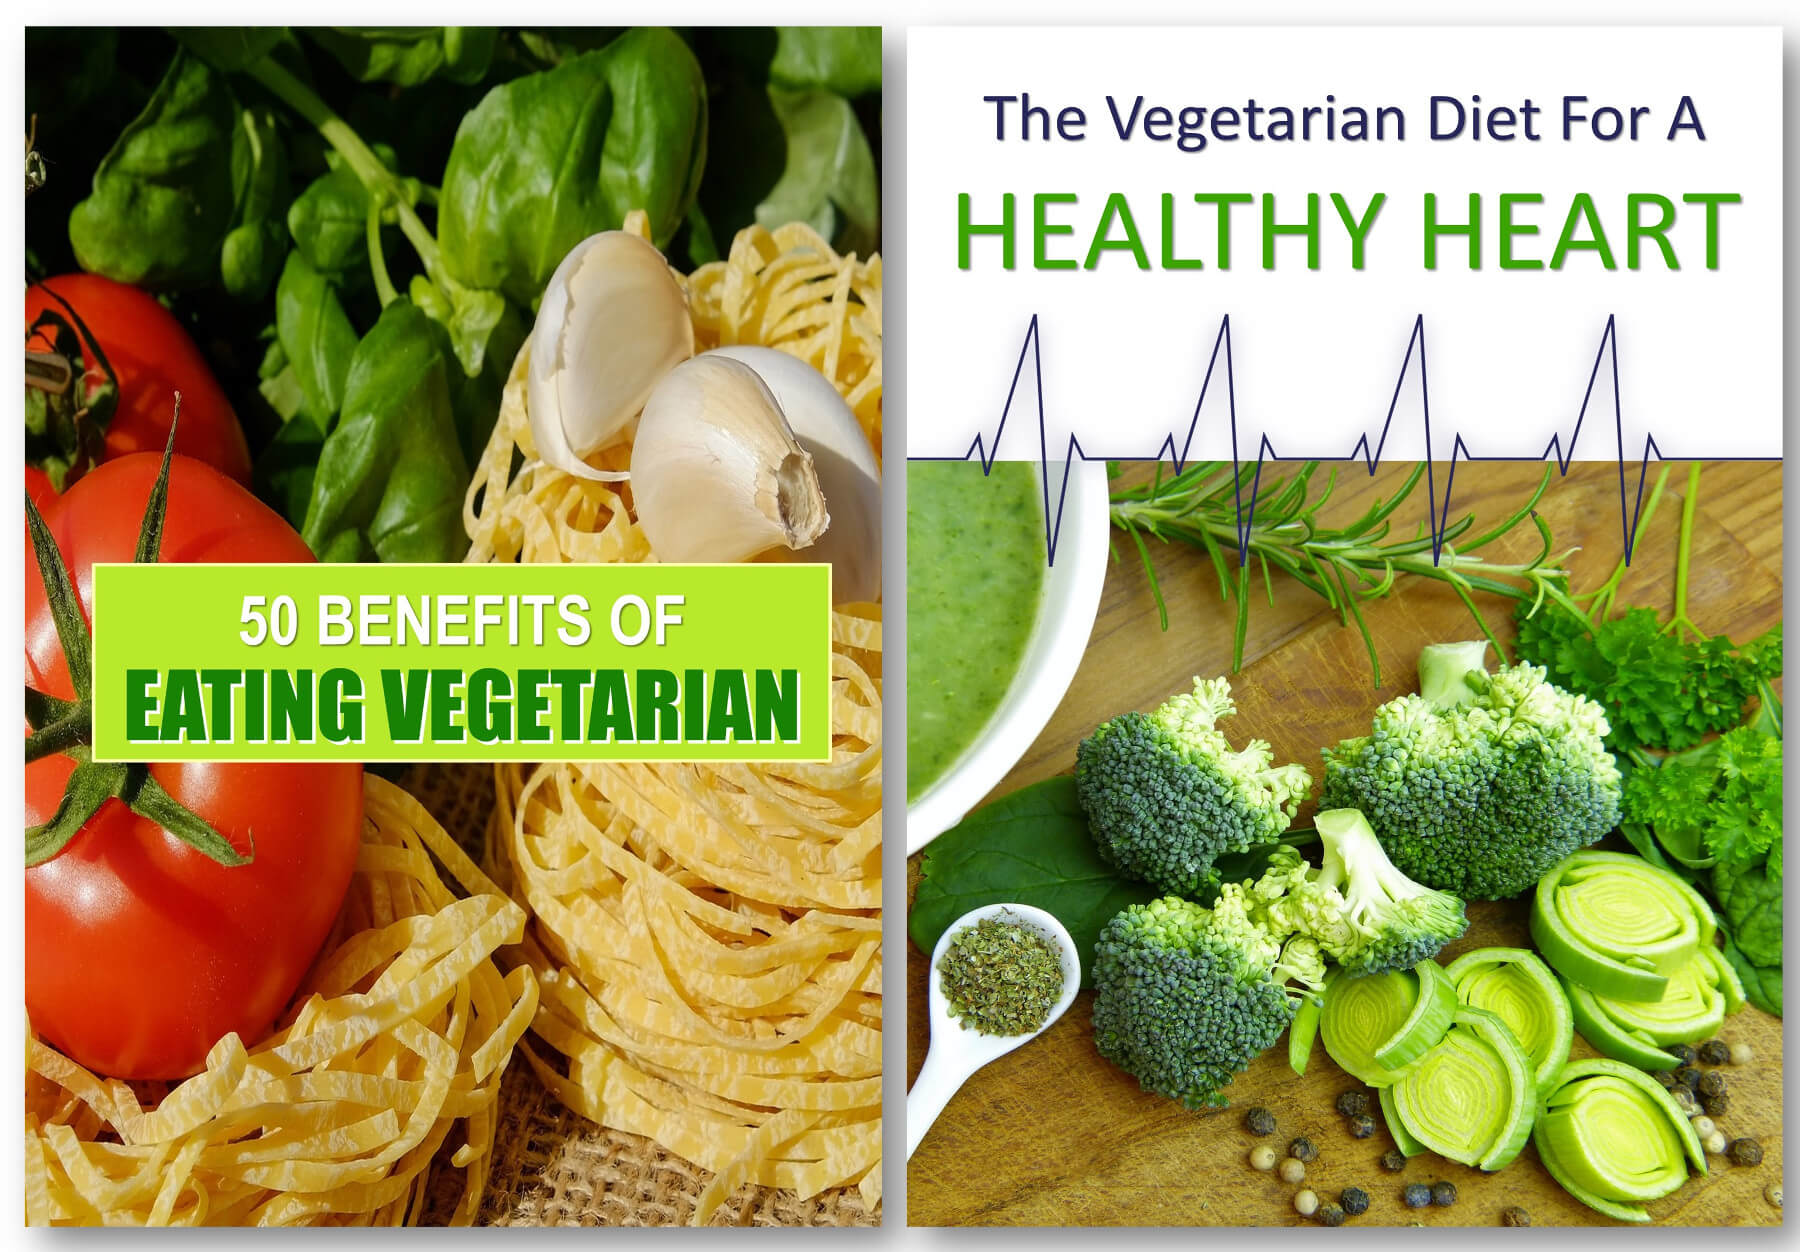 50 Benefits Vegetarian Diet, Vegetarian For Heart Health reports, articles PLR